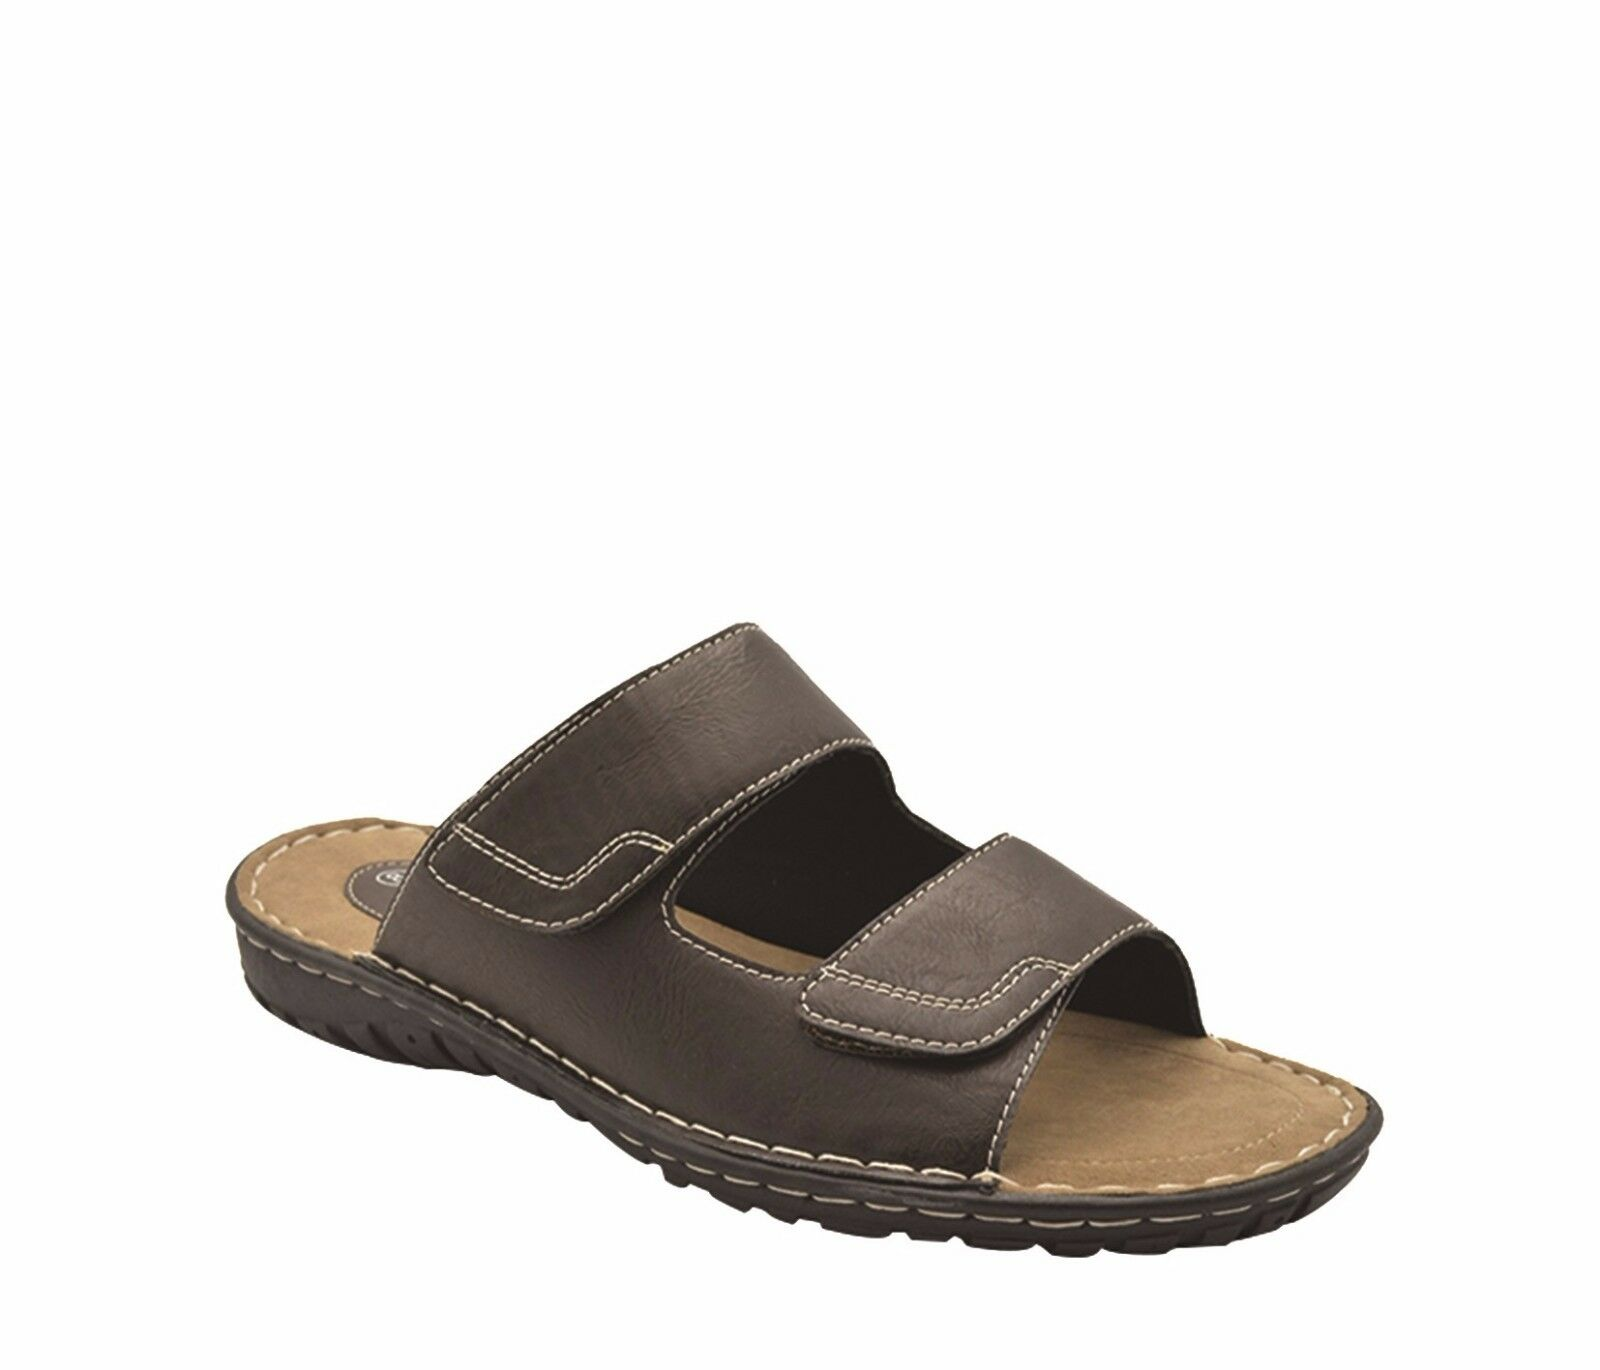 1eeab1fdb034 ... Mens Shoes Sandals Grosby Jesse Brown Twin Touch Touch Touch Fastening  Sandal Size UK6-12